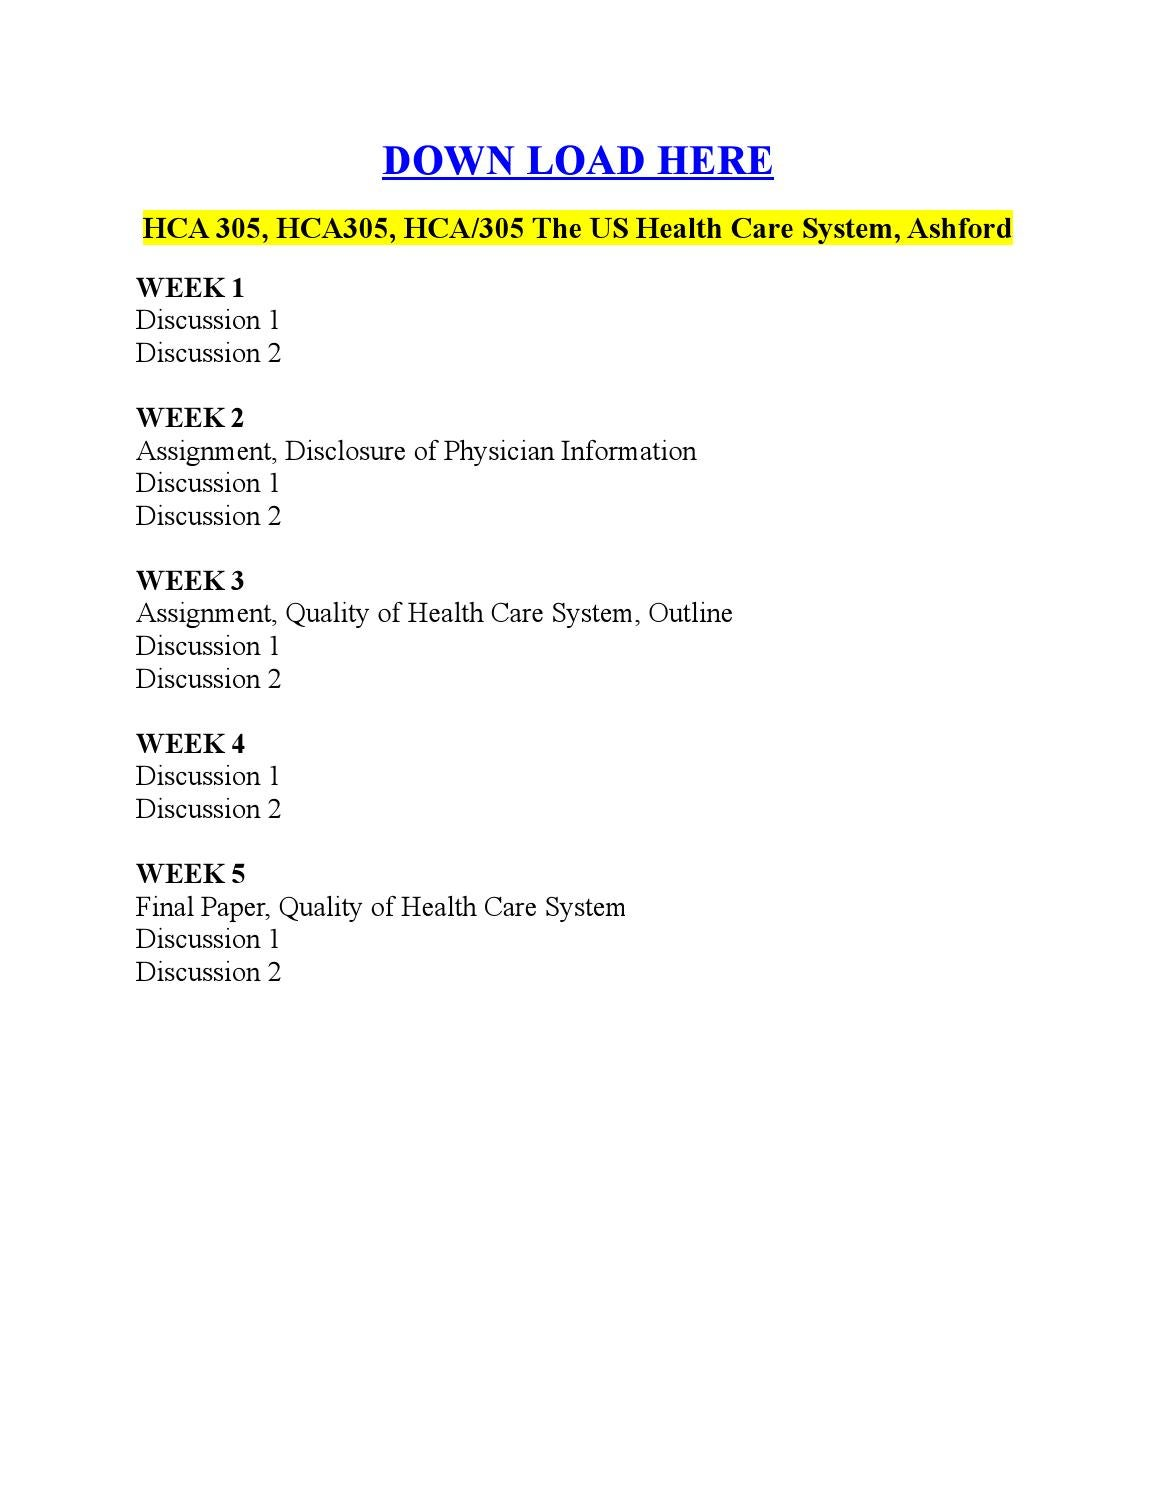 hca305 week5 discussion Week 3: -discussion 1: the chapters assigned this week focused on hospitals and ambulatory (outpatient) healthcare organizations each has their own unique administrative and clinical requirements due to shifts in utilization.